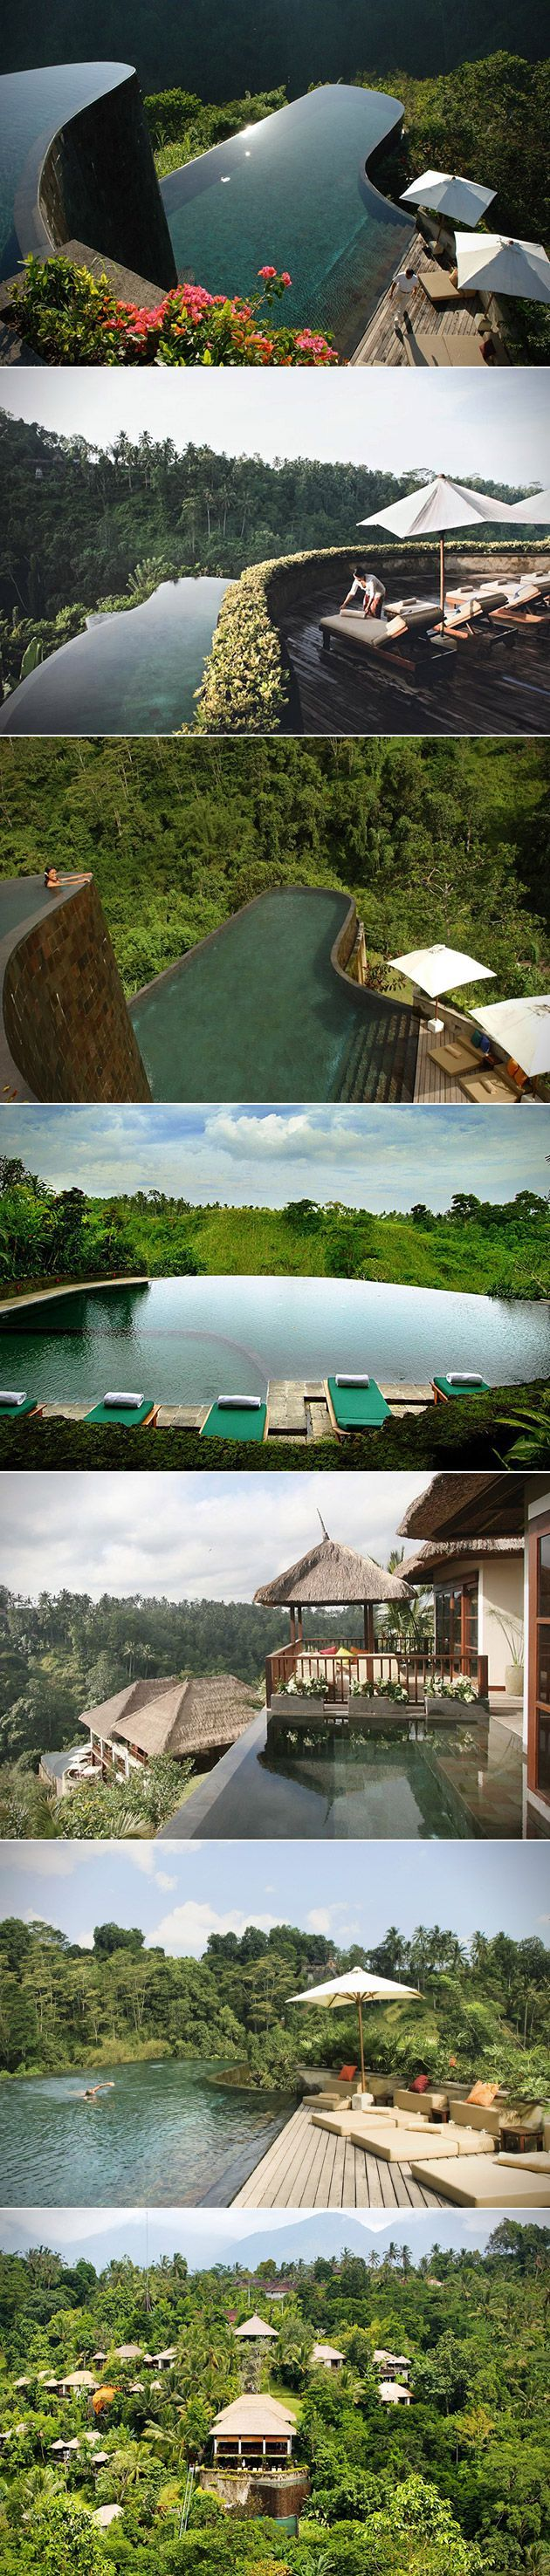 Frederick gent school olympic legacy structure inspiration from - When It Comes To Truly Breathtaking Infinity Pools There Are Few Places That Rival Ubud